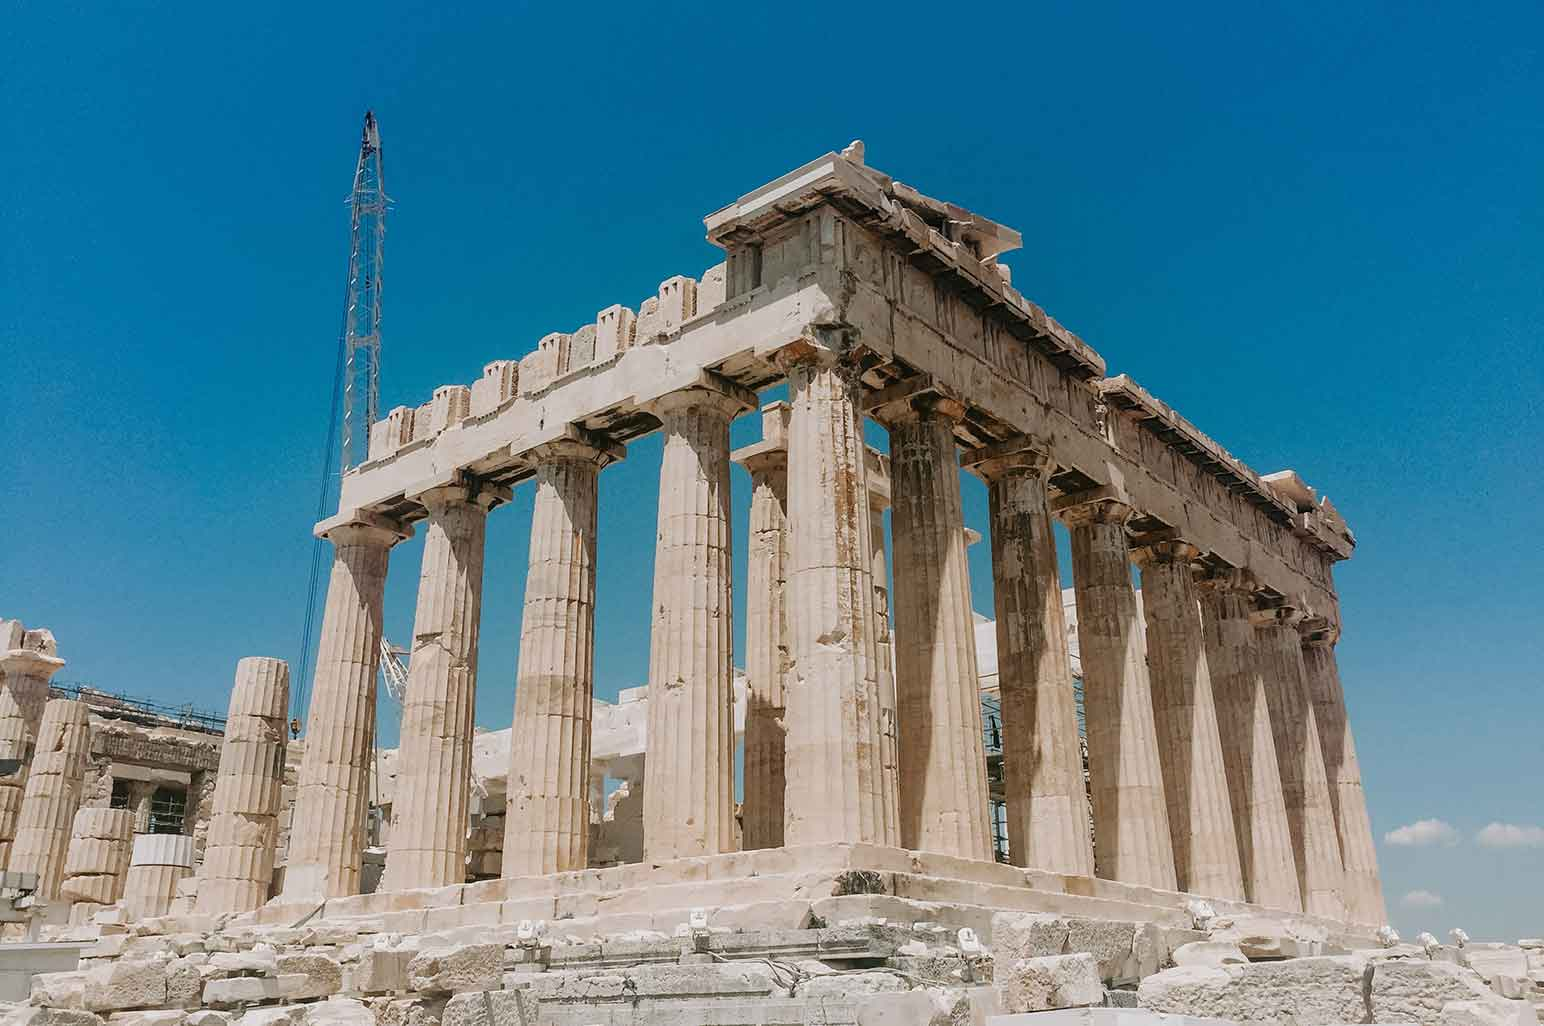 Discover Greece: Top 10 Places You Need to Visit in Greece - Athens